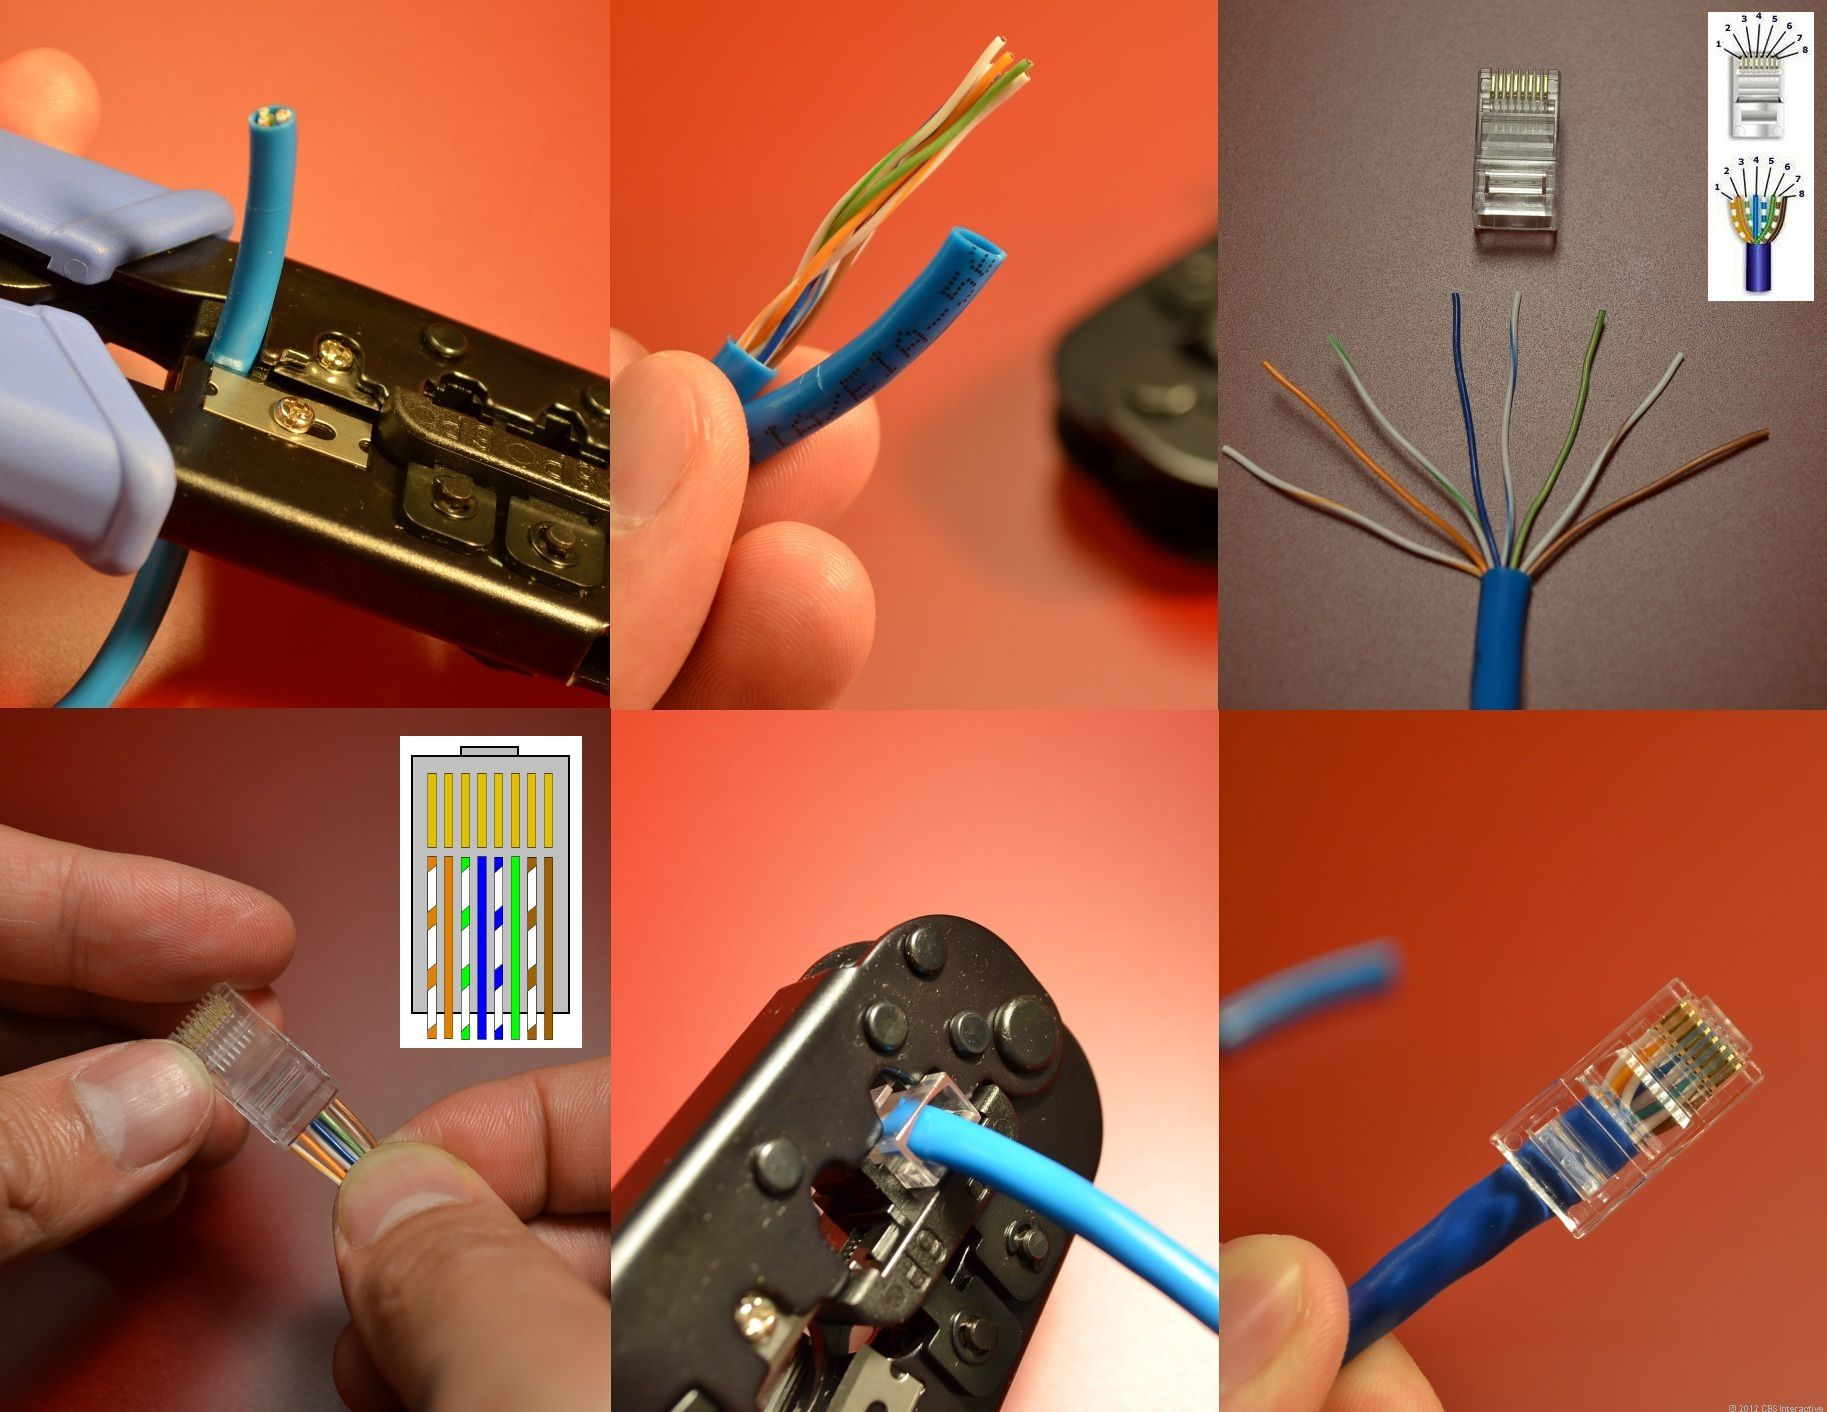 Incredible Home Networking Explained Part 3 Taking Control Of Your Wires Cnet Wiring Cloud Hemtshollocom